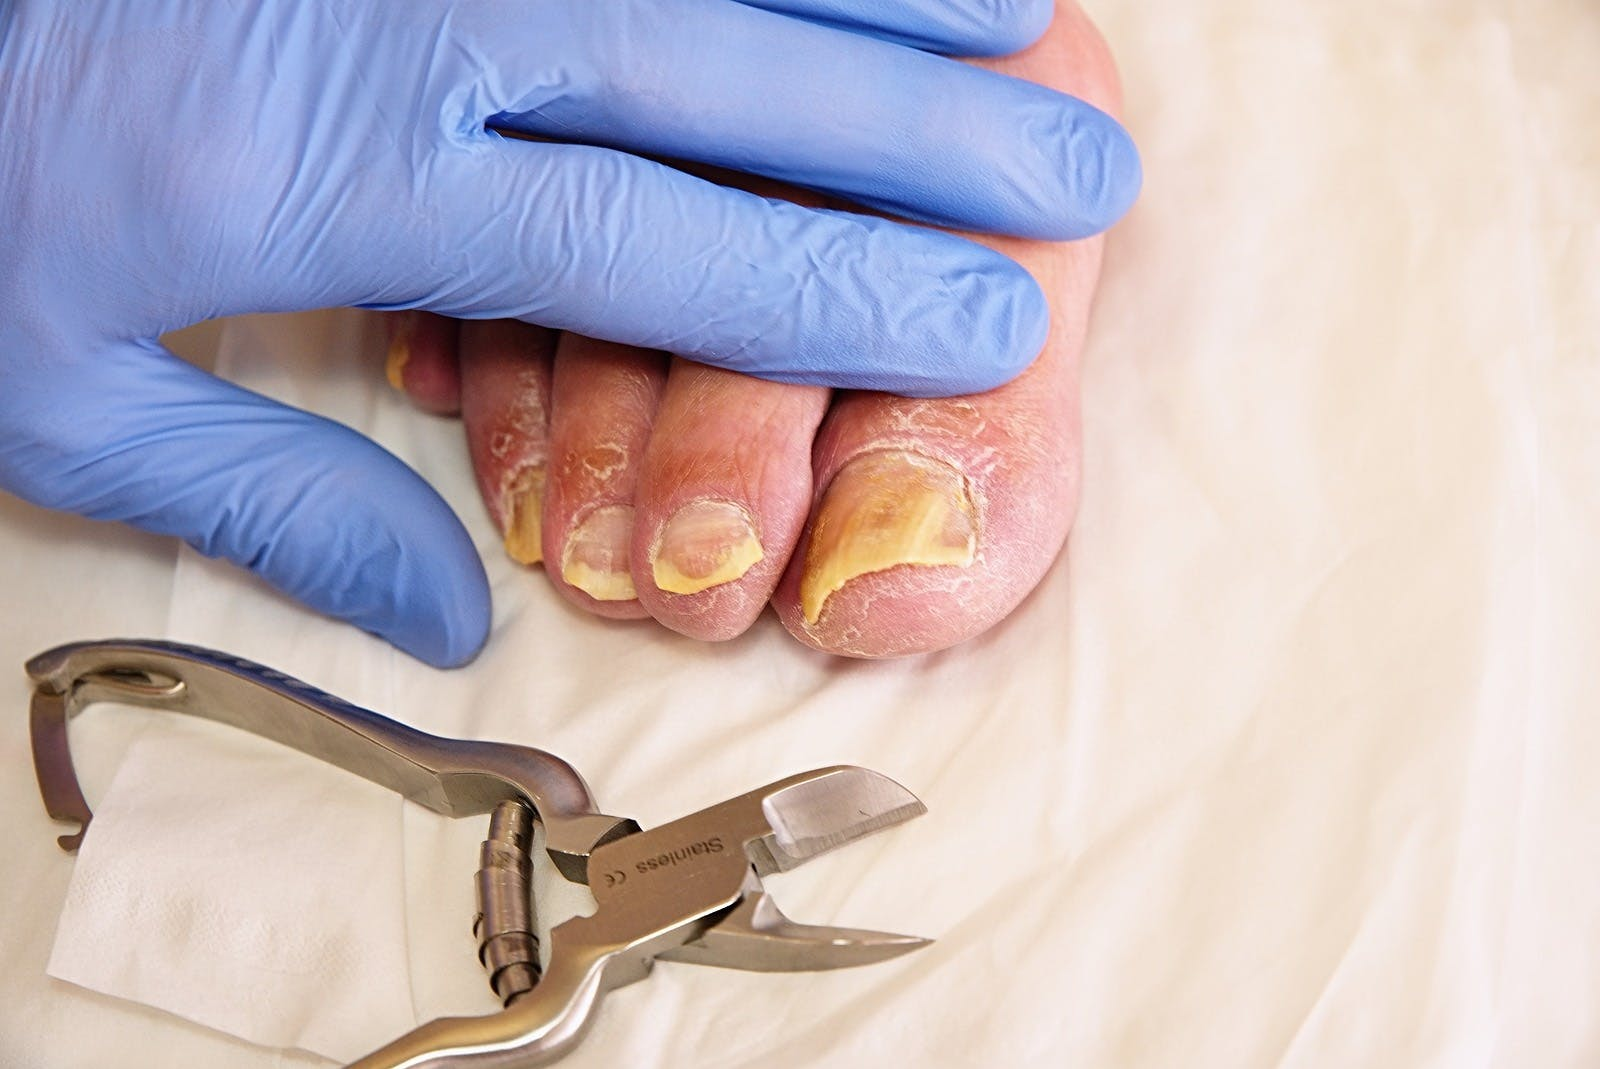 Fungus on the toes nails. Twisted toes on the foot with calluses.  Hallux rigidus tends to affect males foot.